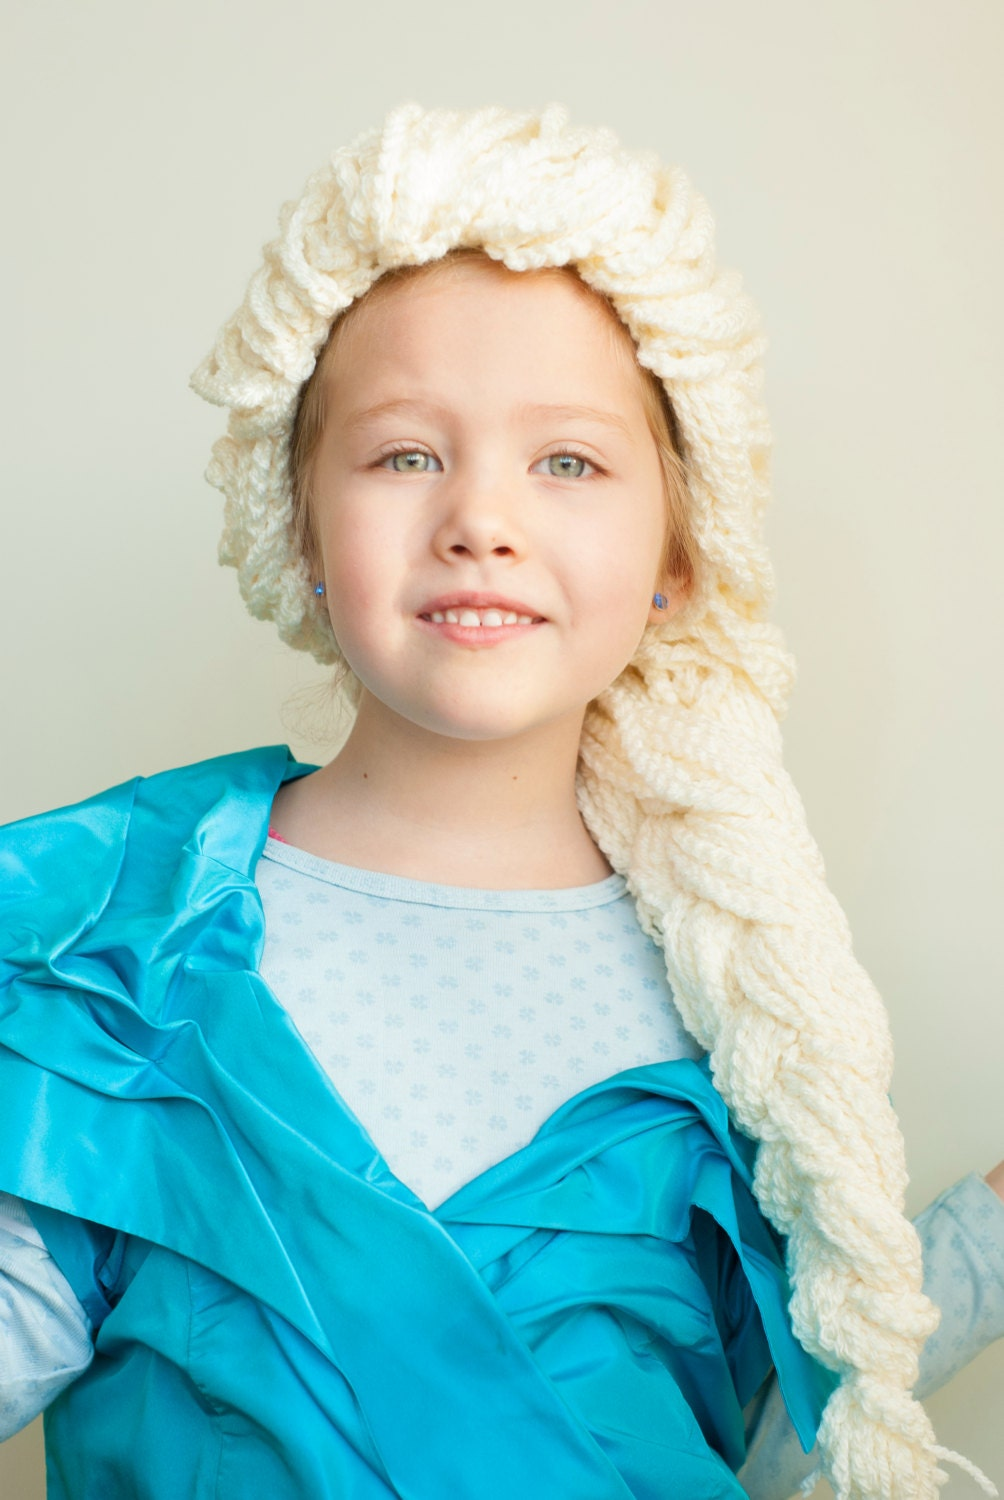 Crochet Elsa Hair Hat : Crochet pattern Elsa hair wig to dress up Frozen inspired